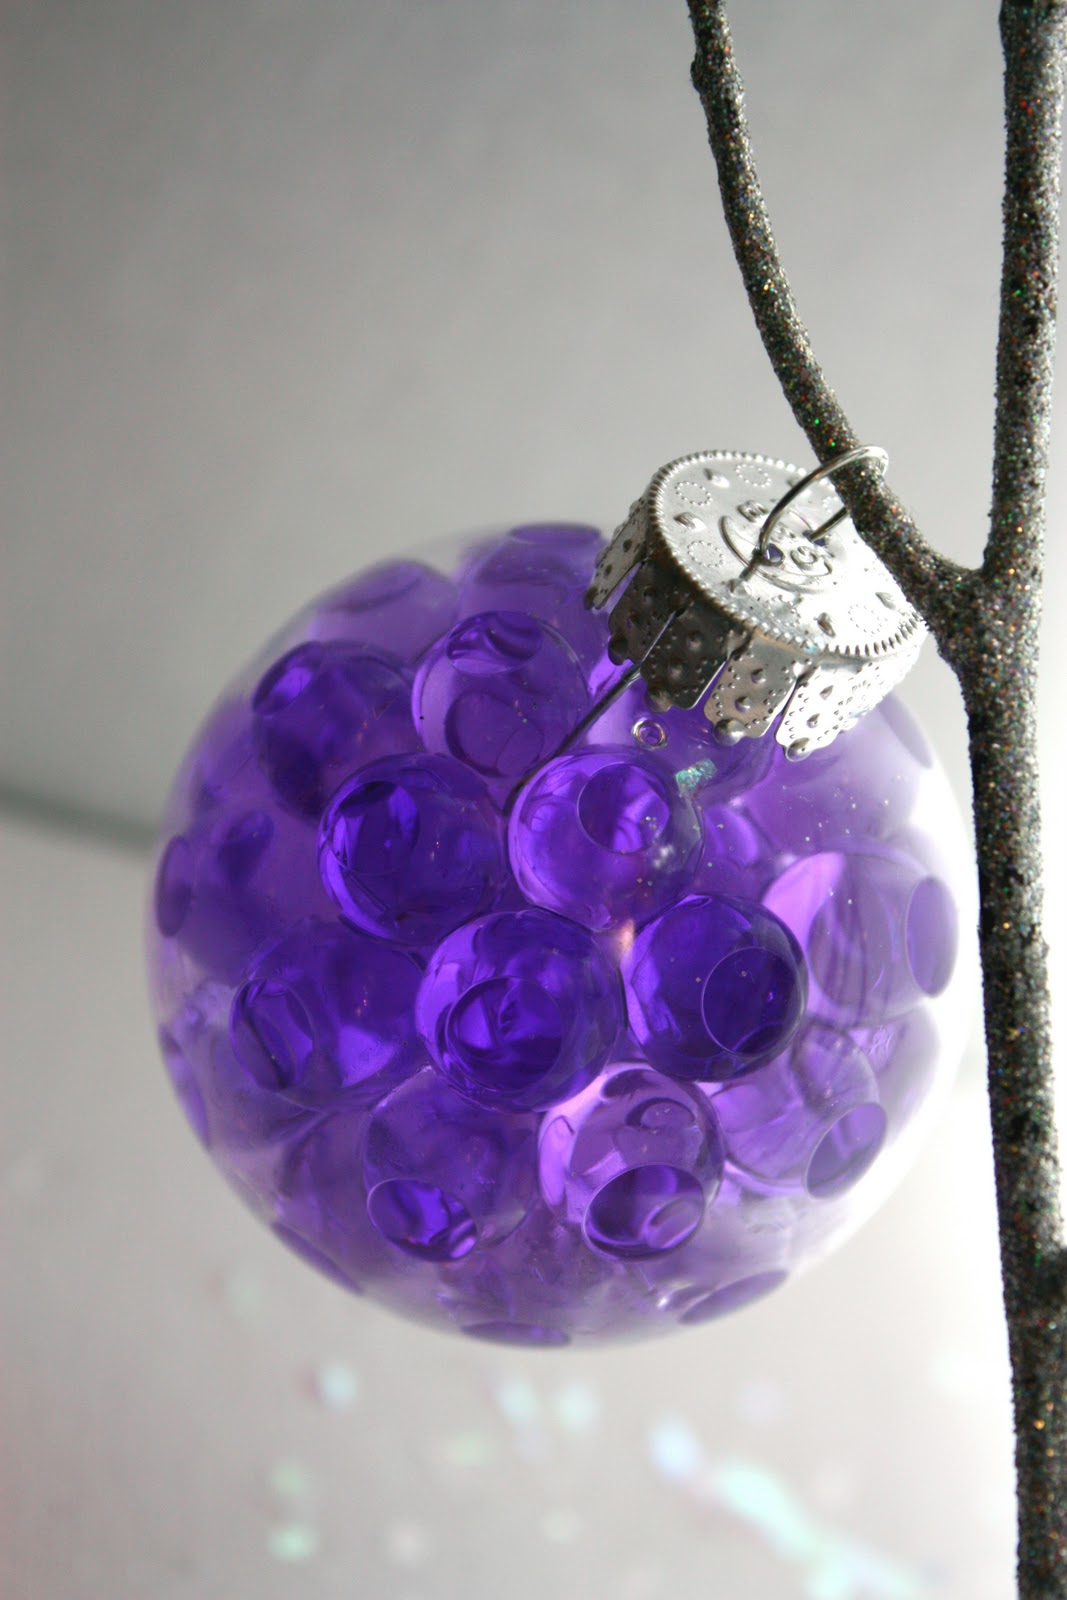 Glass Christmas Balls Decoration Ideas : Creative ideas for decorating and filling clear glass